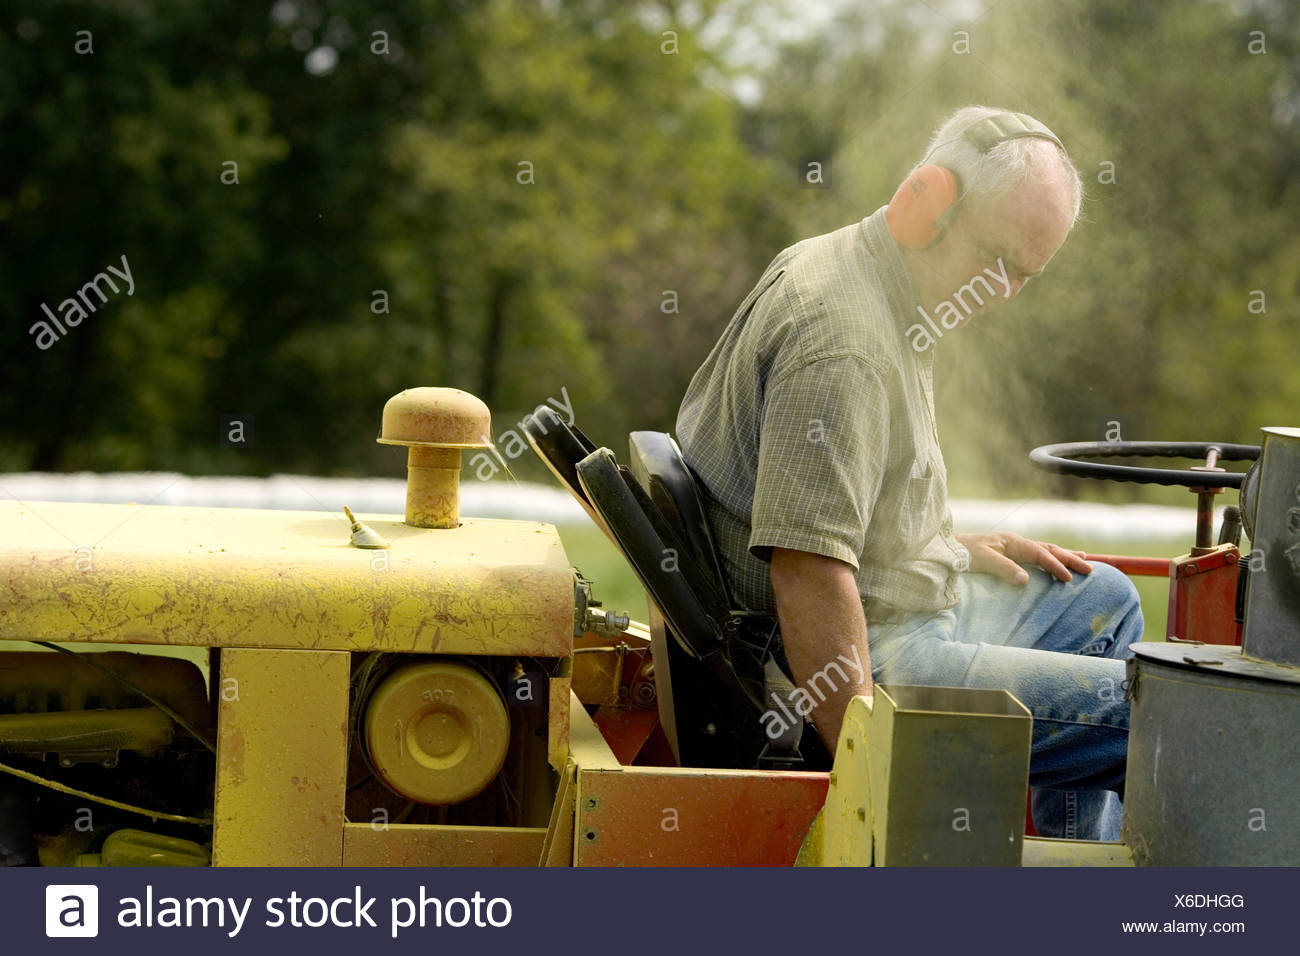 A man on a tractor harvests ragweed pollen at his fam in Sedalia Missouri. Stock Photo